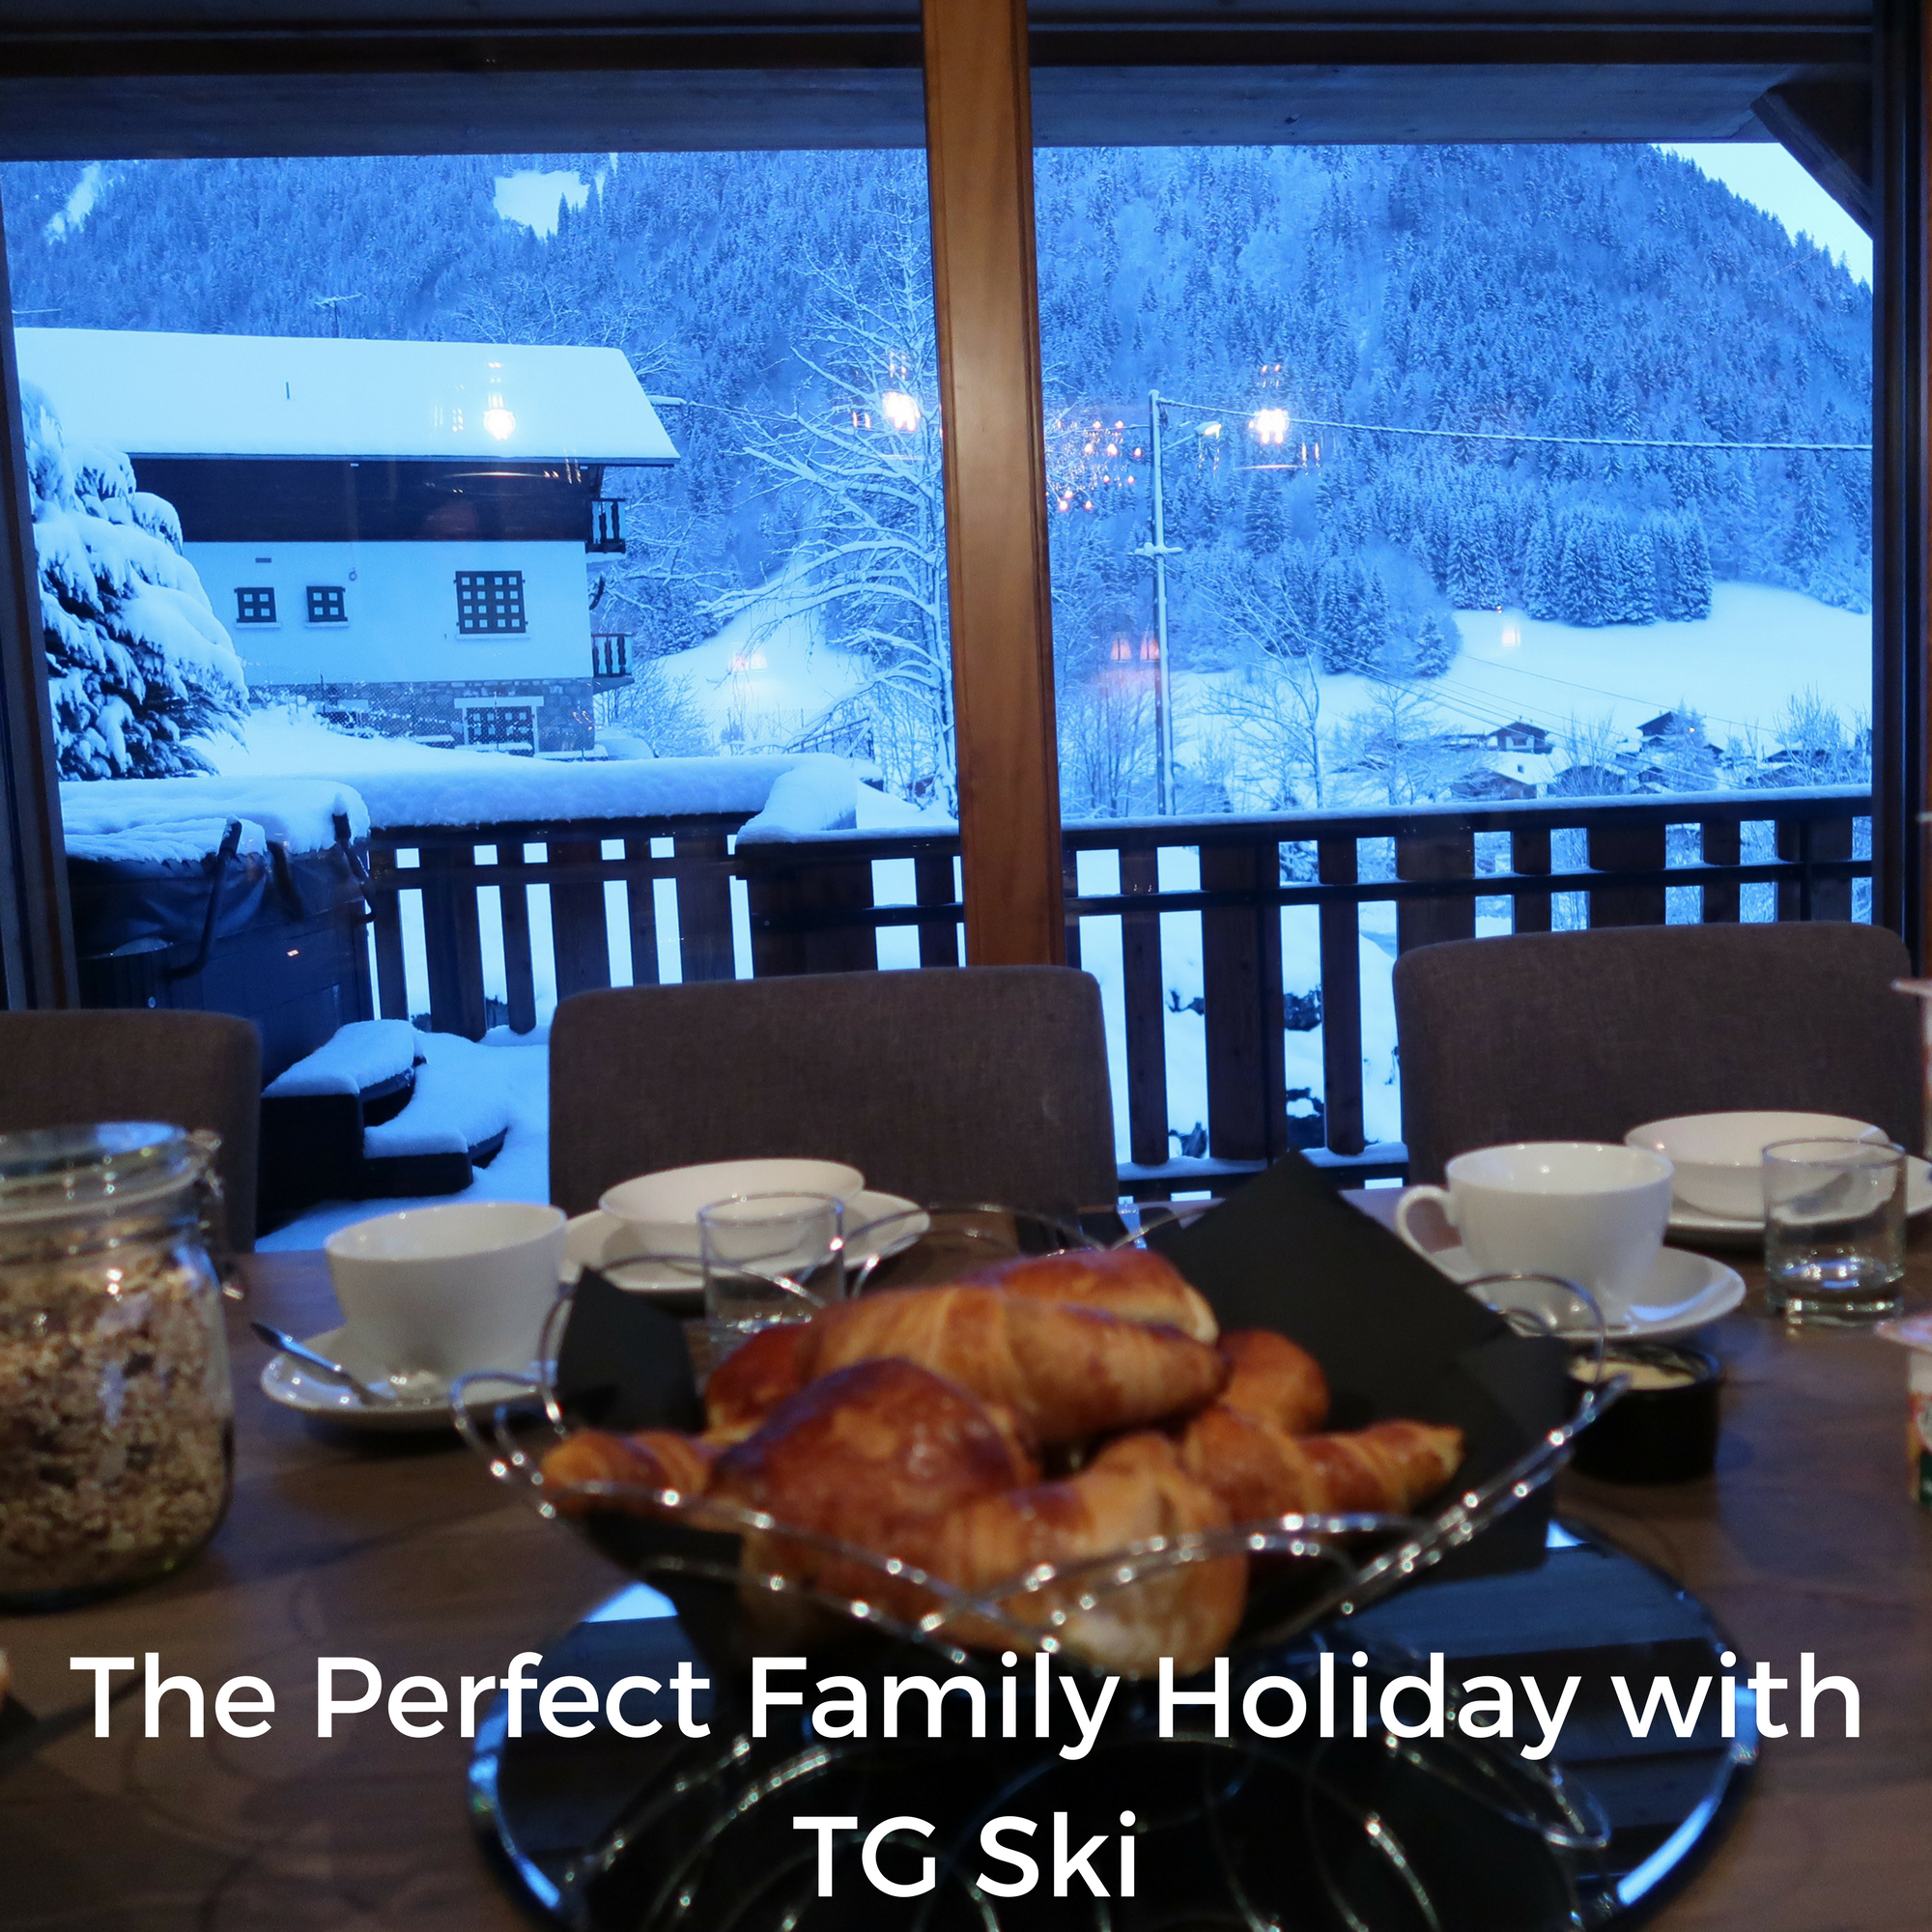 The Perfect Family Holiday with TG Ski